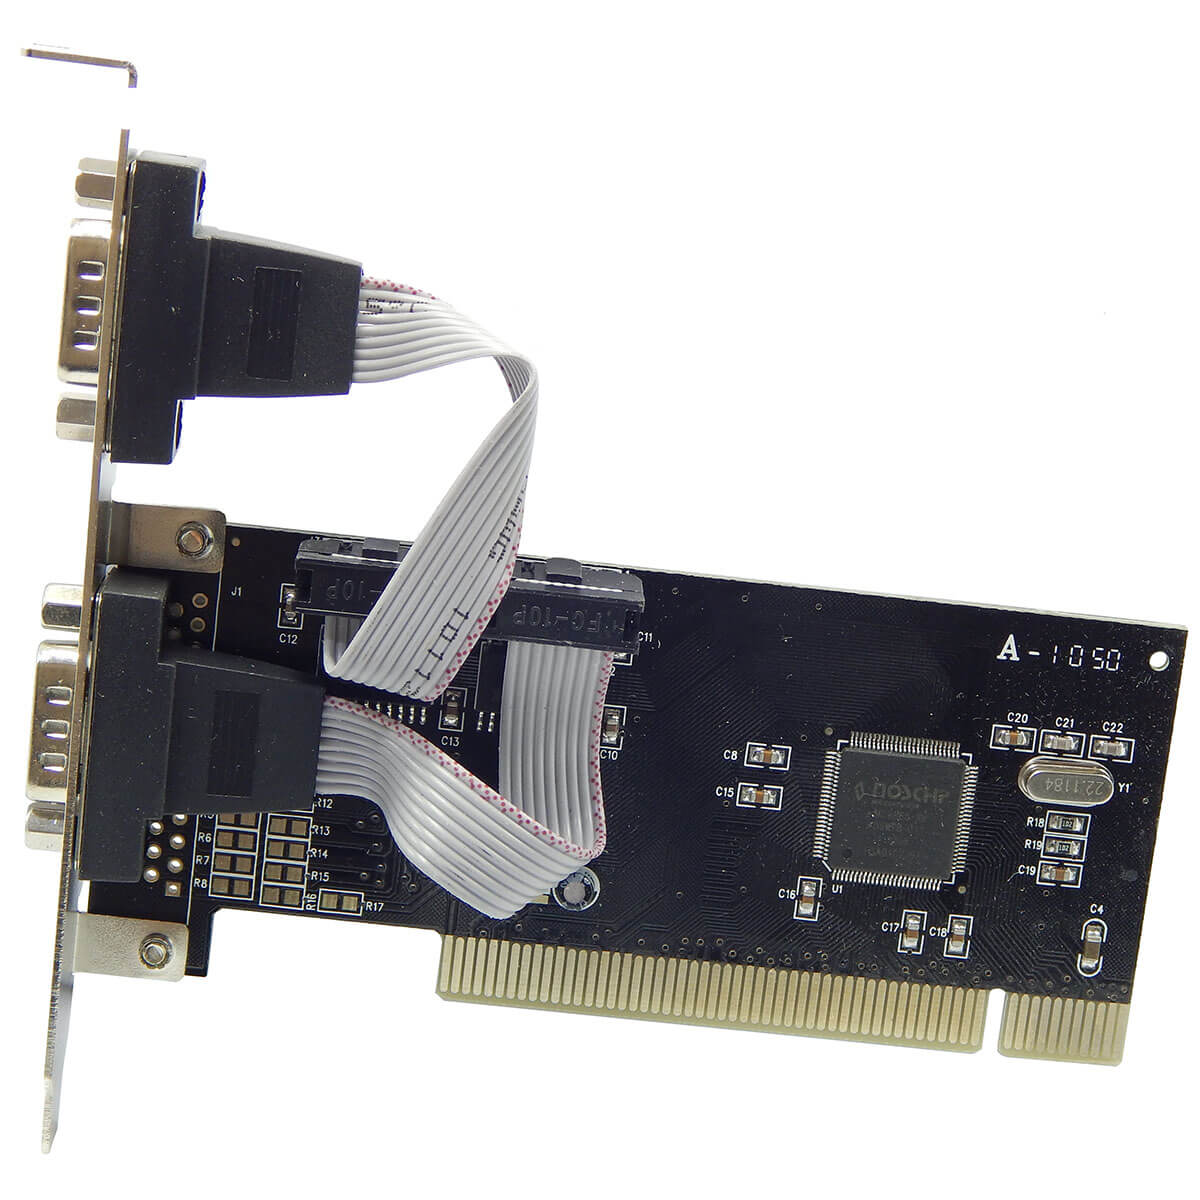 Placa PCI FPSS-01 P/IMPR. 2 PORT. SERIAL RS-232 DB-9